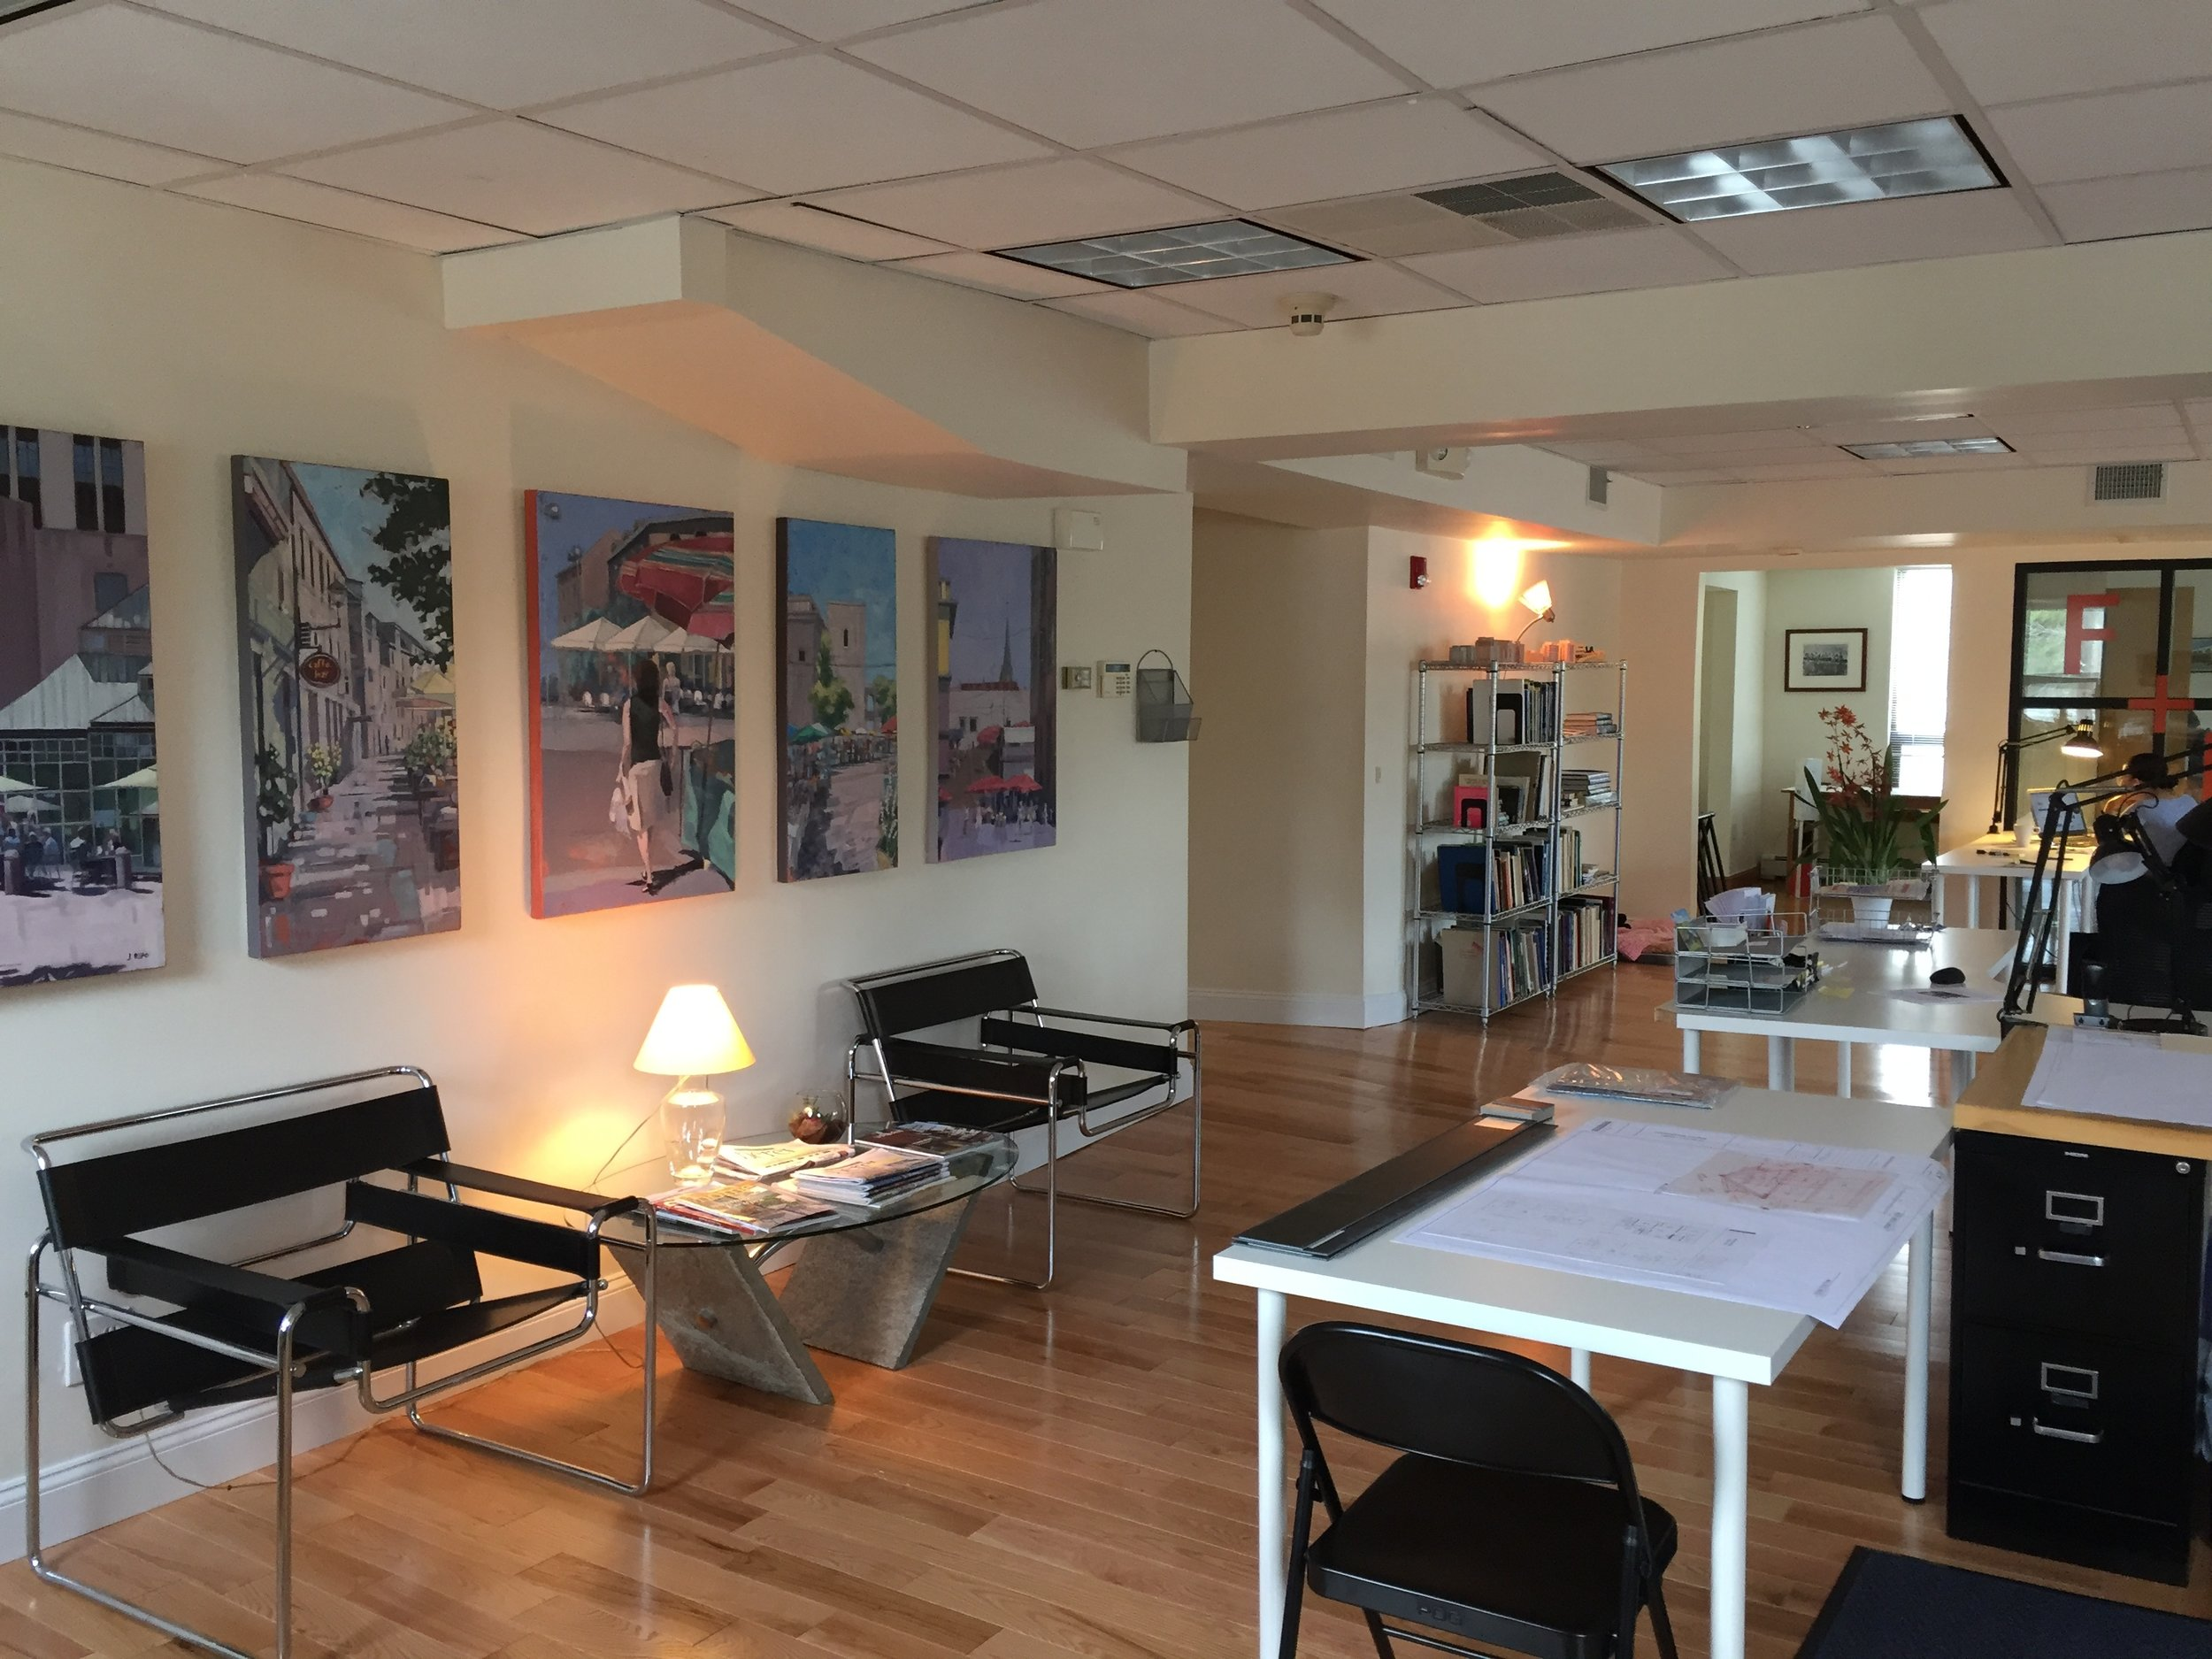 Integrating gallery space into an office landscape